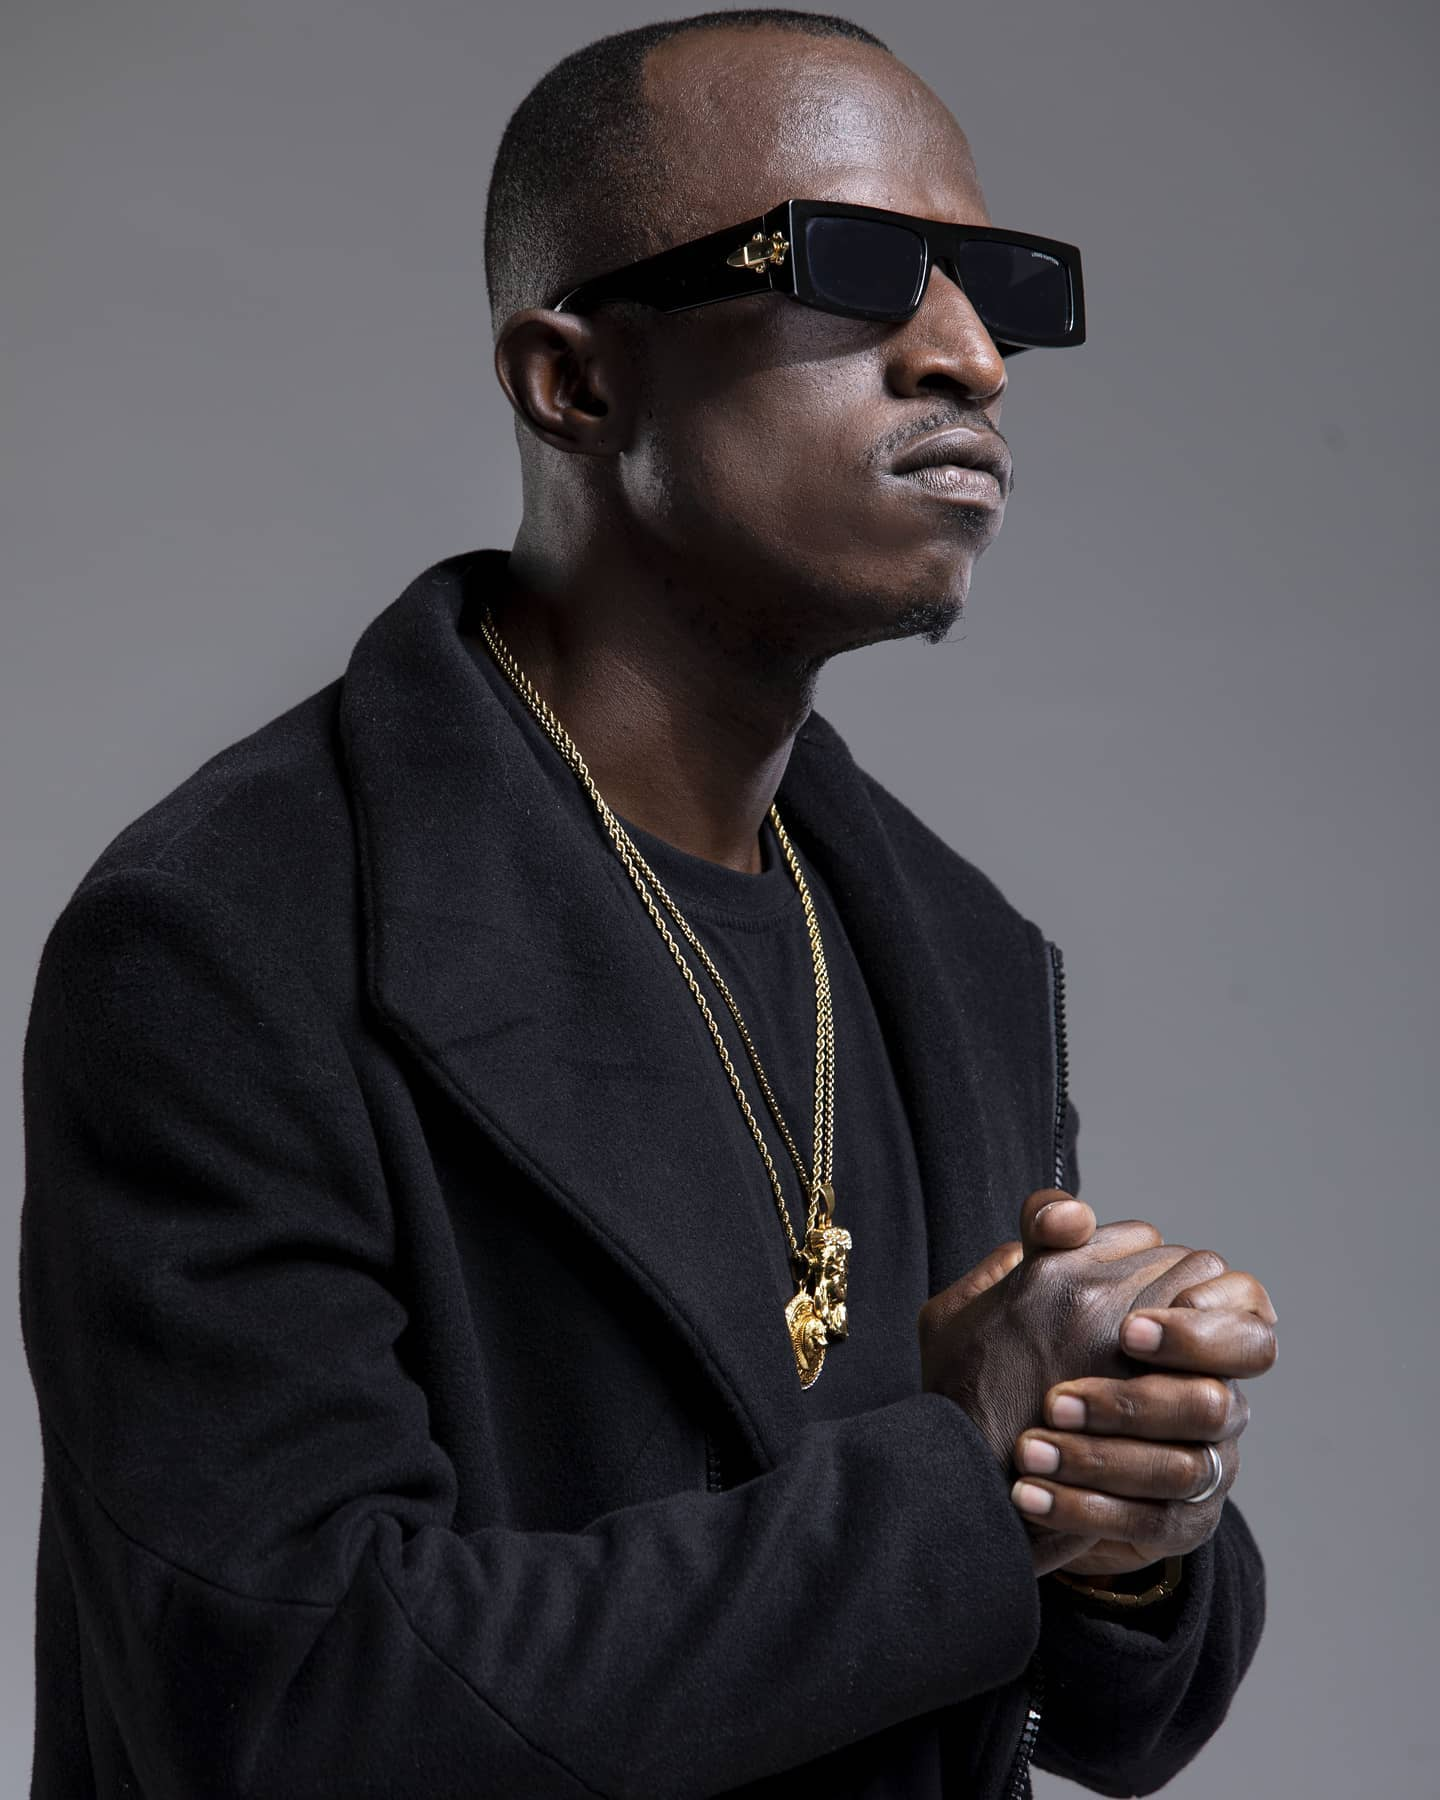 Macky 2 Calls On Youths Not To Politicize The Entertainment Industry